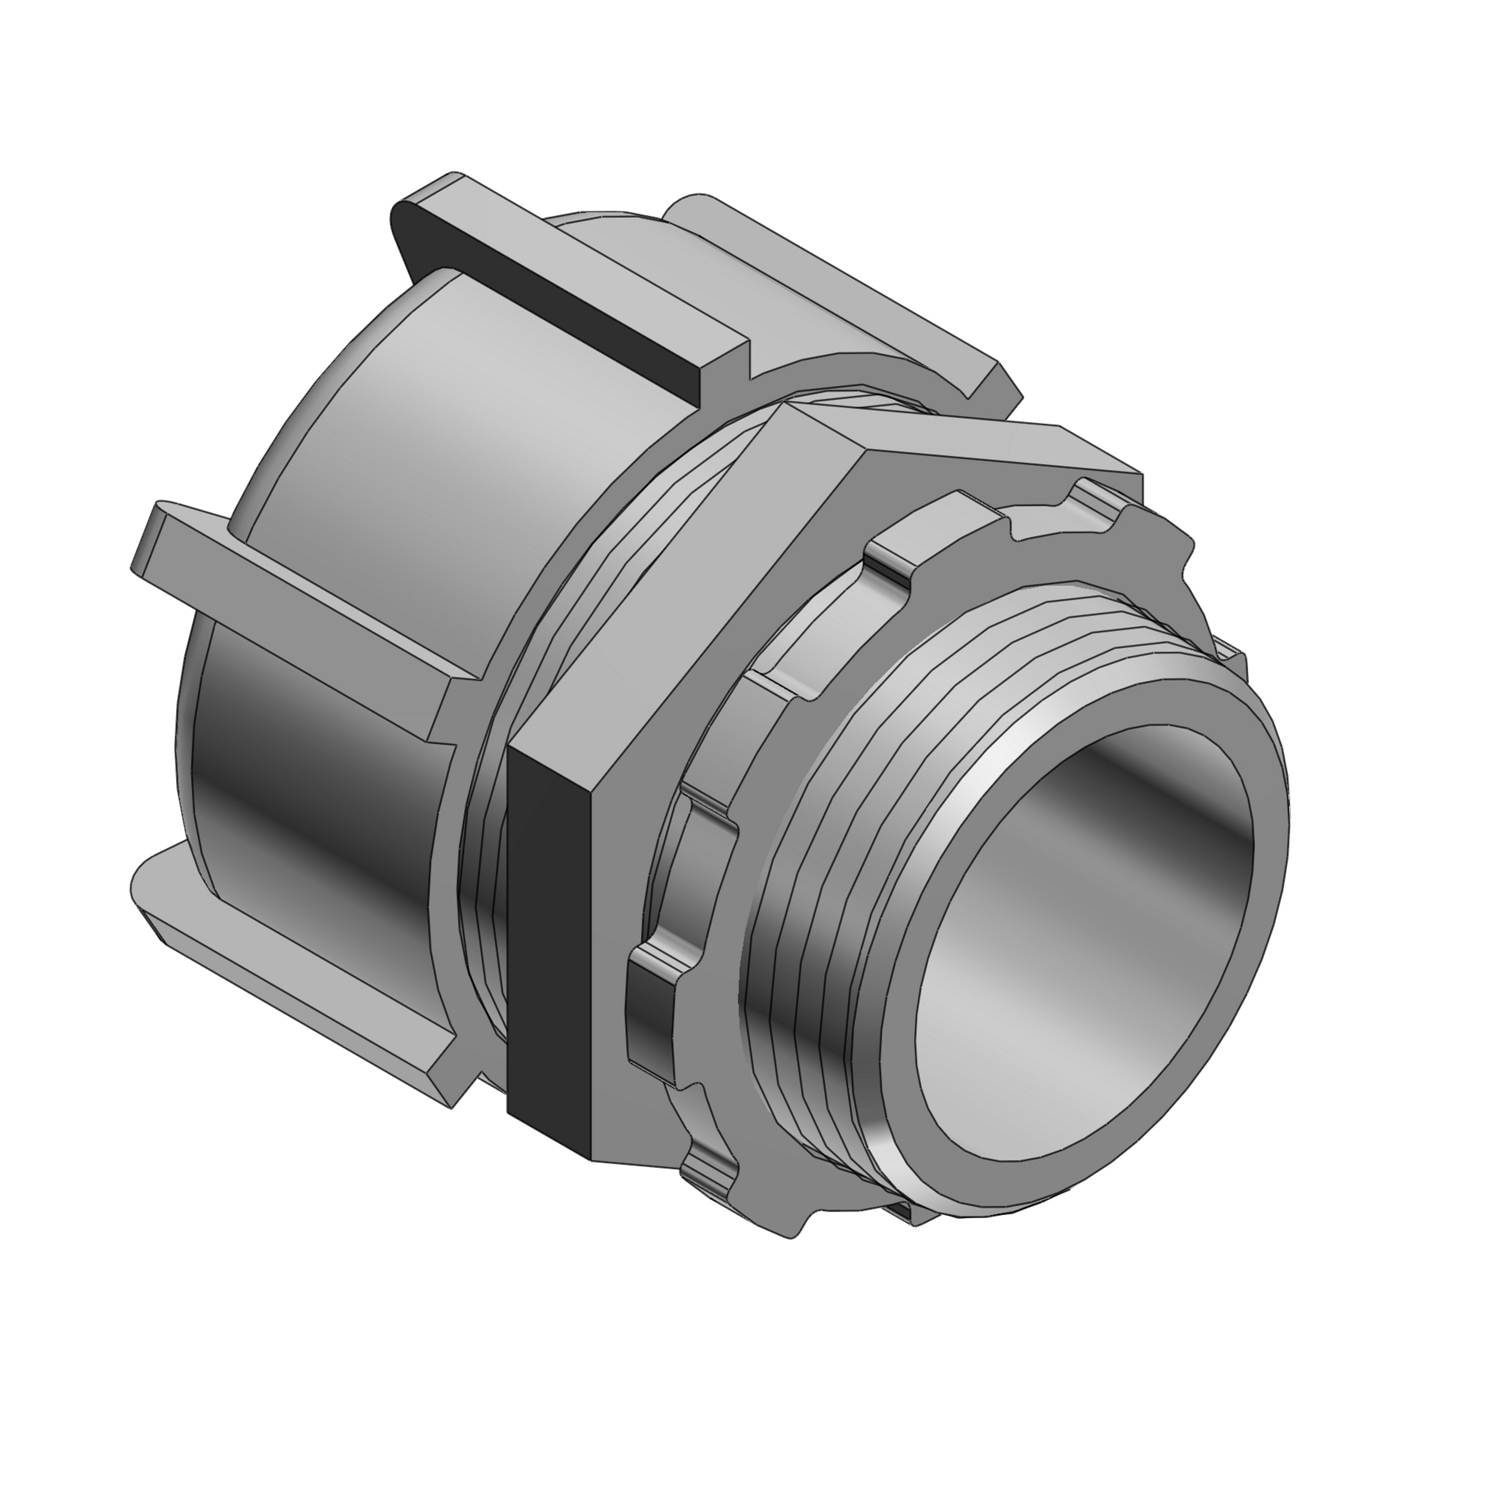 T&B Industrial Fitting 52 Series Flexible Non-Insulated Liquidtight Conduit Connector, 3/4 in Trade, Straight, Steel